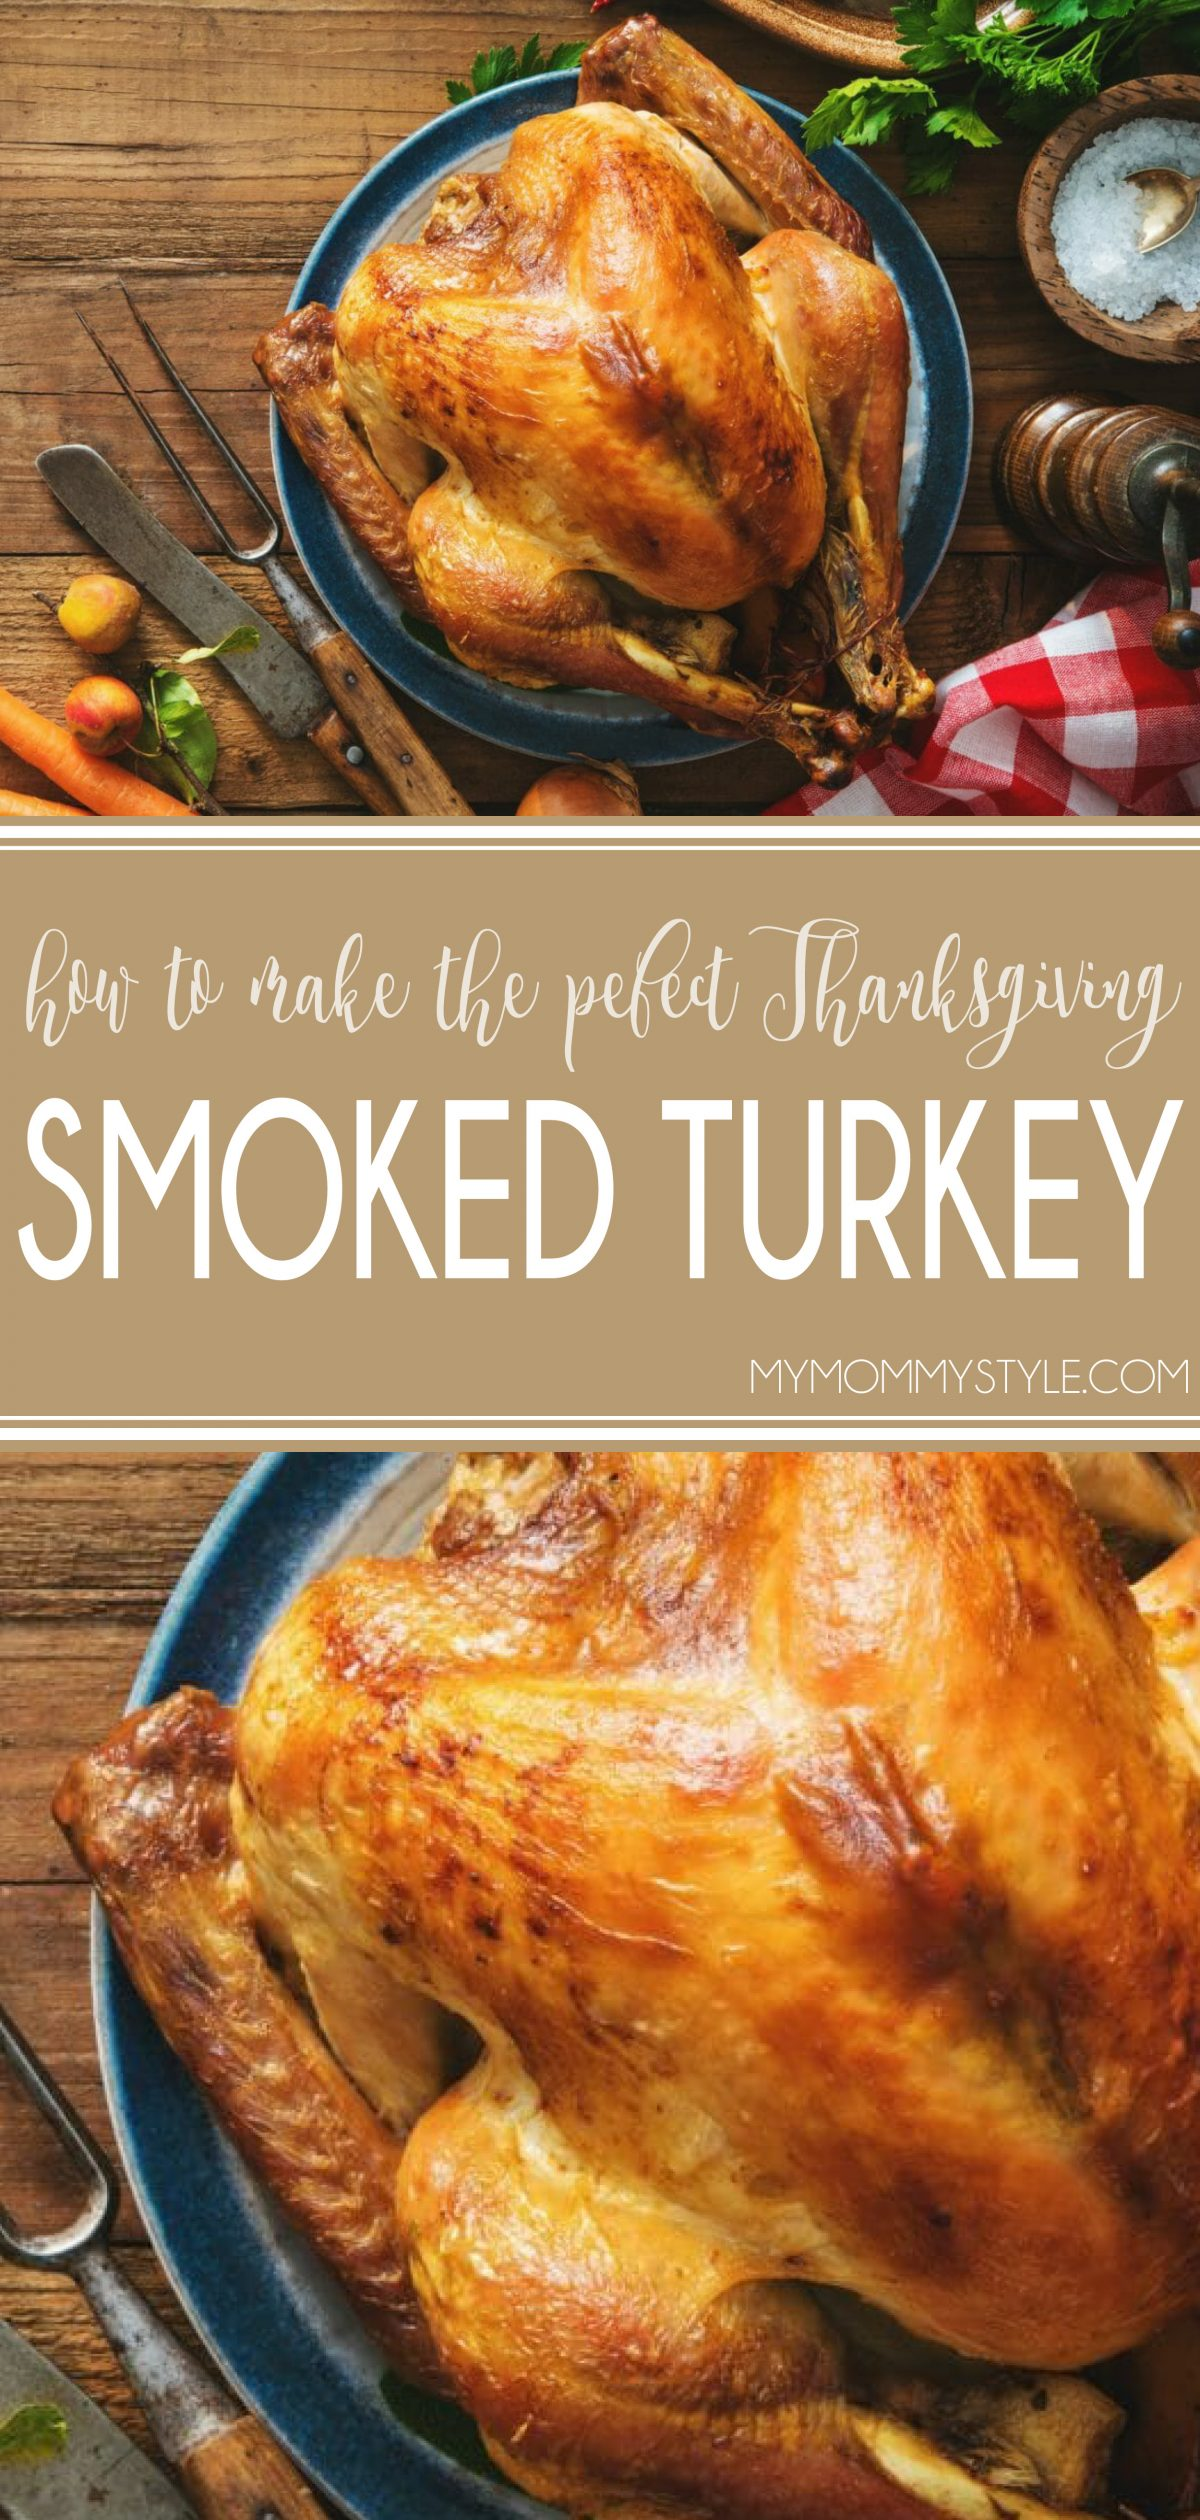 After several attempts, I've finally perfected how to smoke a turkey!  Smoking turkey is no easy task, as it can dry out very easily.  My recipe will give you the perfect juicy and flavorful Thanksgiving turkey! via @mymommystyle